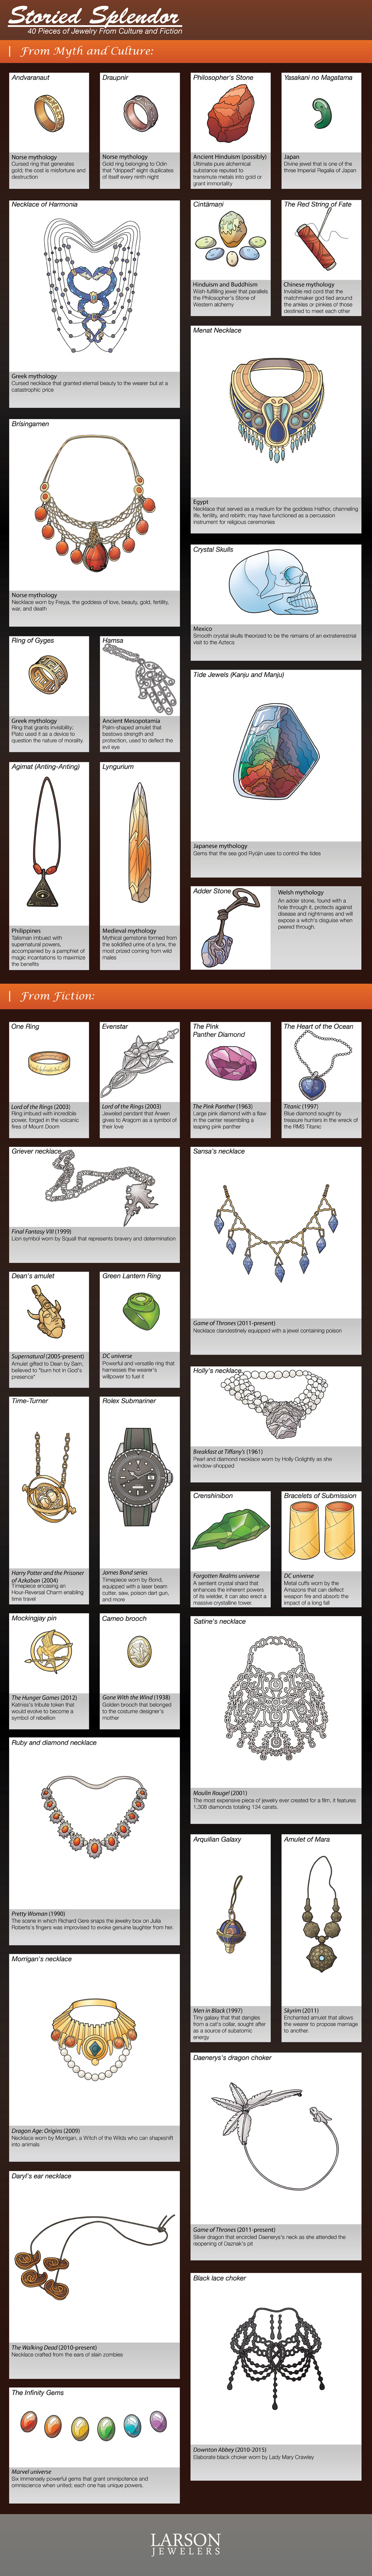 Storied Splendor: 40 Pieces of Jewelry From Culture and Fiction